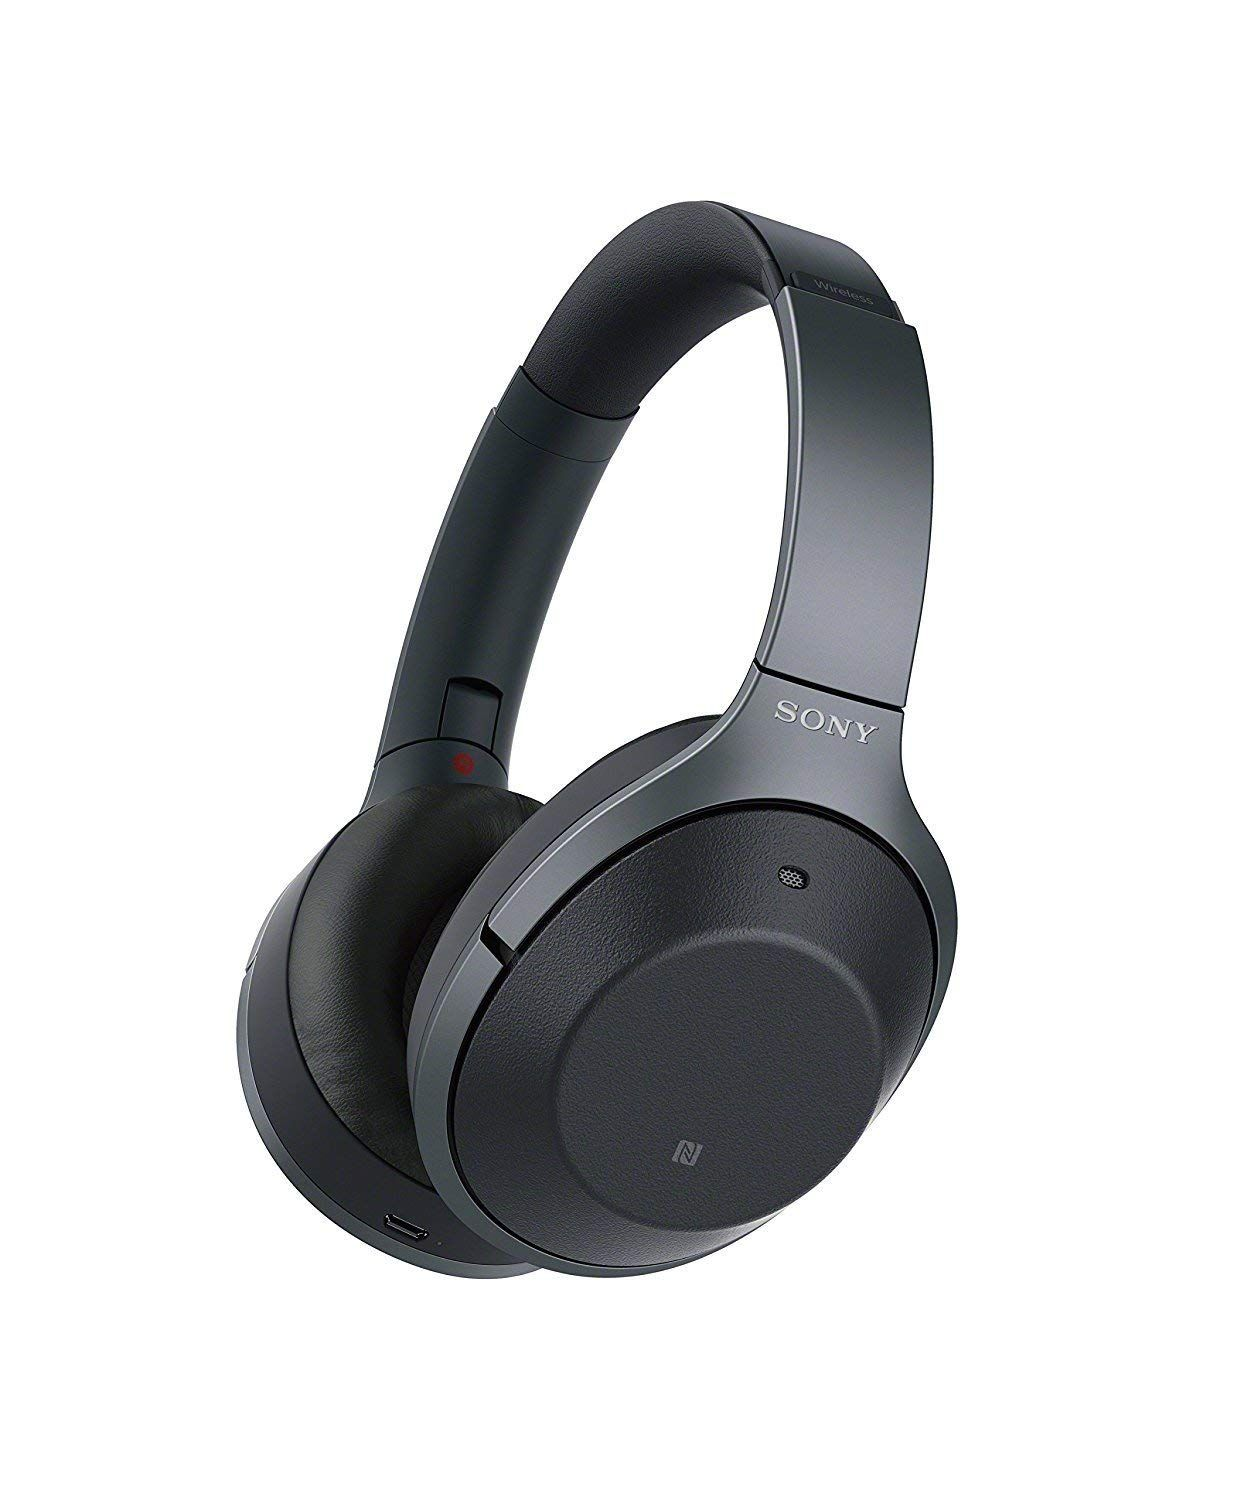 Sony Wh 1000xm2 B Wireless Bluetooth Noise Cancelling Hi Fi Headphones Certified Refurbished Bluetooth Noise Cancelling Headphones Bluetooth Headphones Wireless Wireless Noise Cancelling Headphones